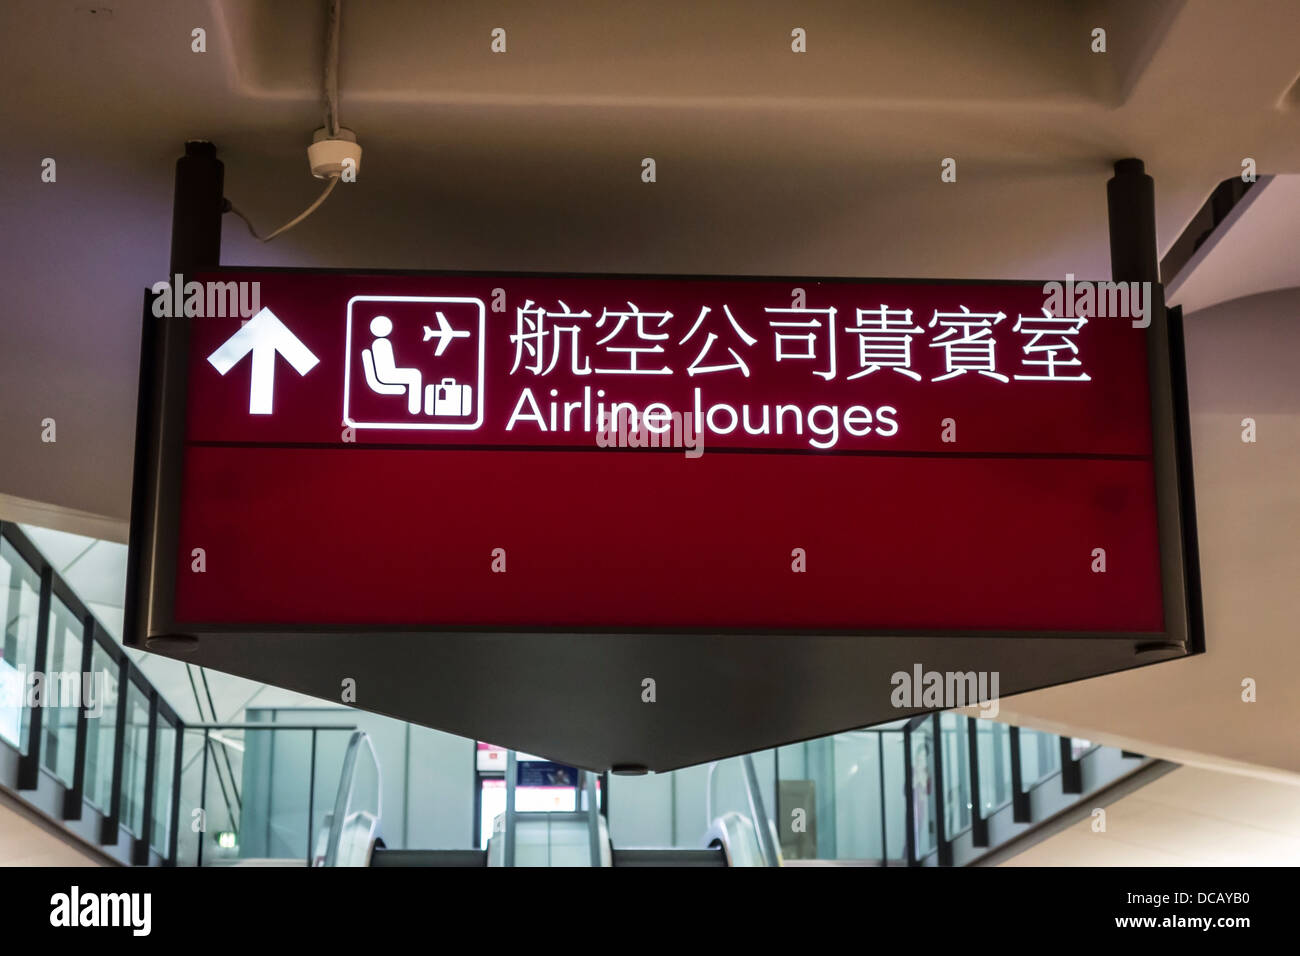 Airlines lounges sign in Hong Kong airport - Stock Image